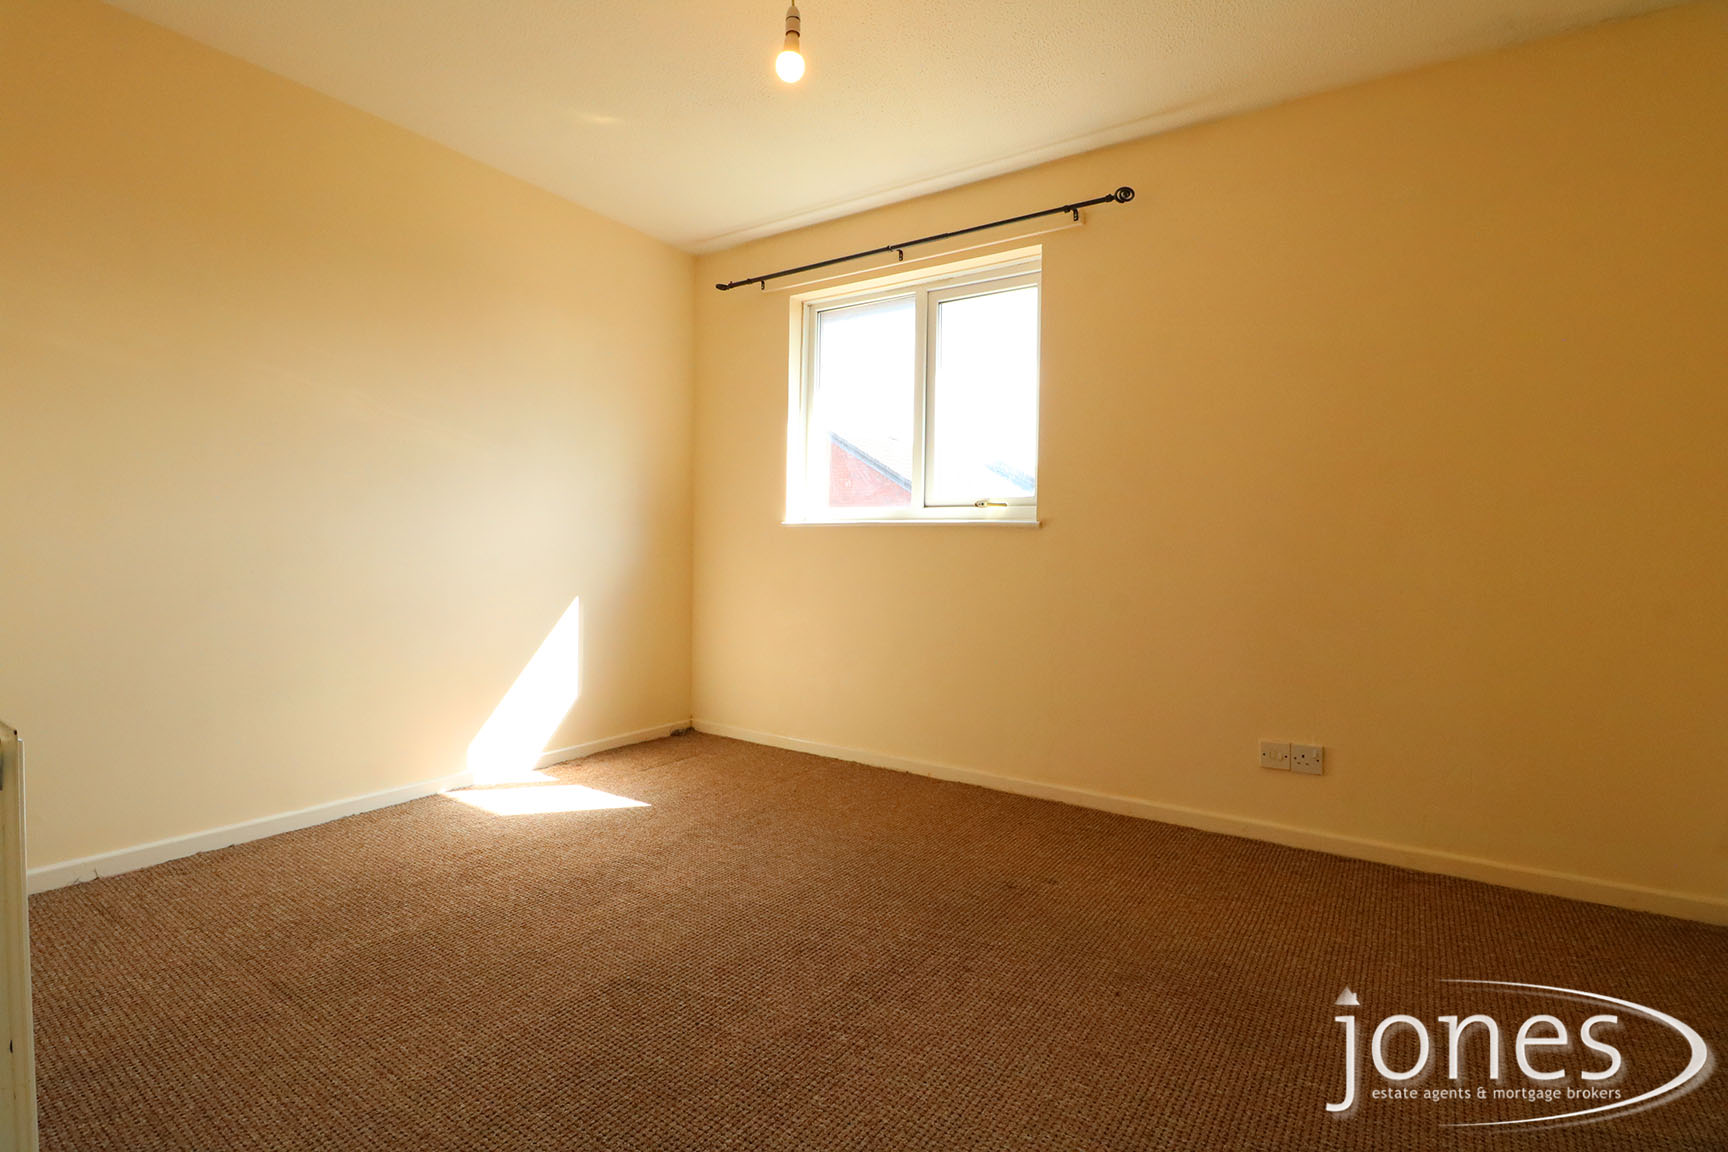 Home for Sale Let - Photo 04 Stanley Close,Thornaby, Stockton on Tees, TS17 6PP